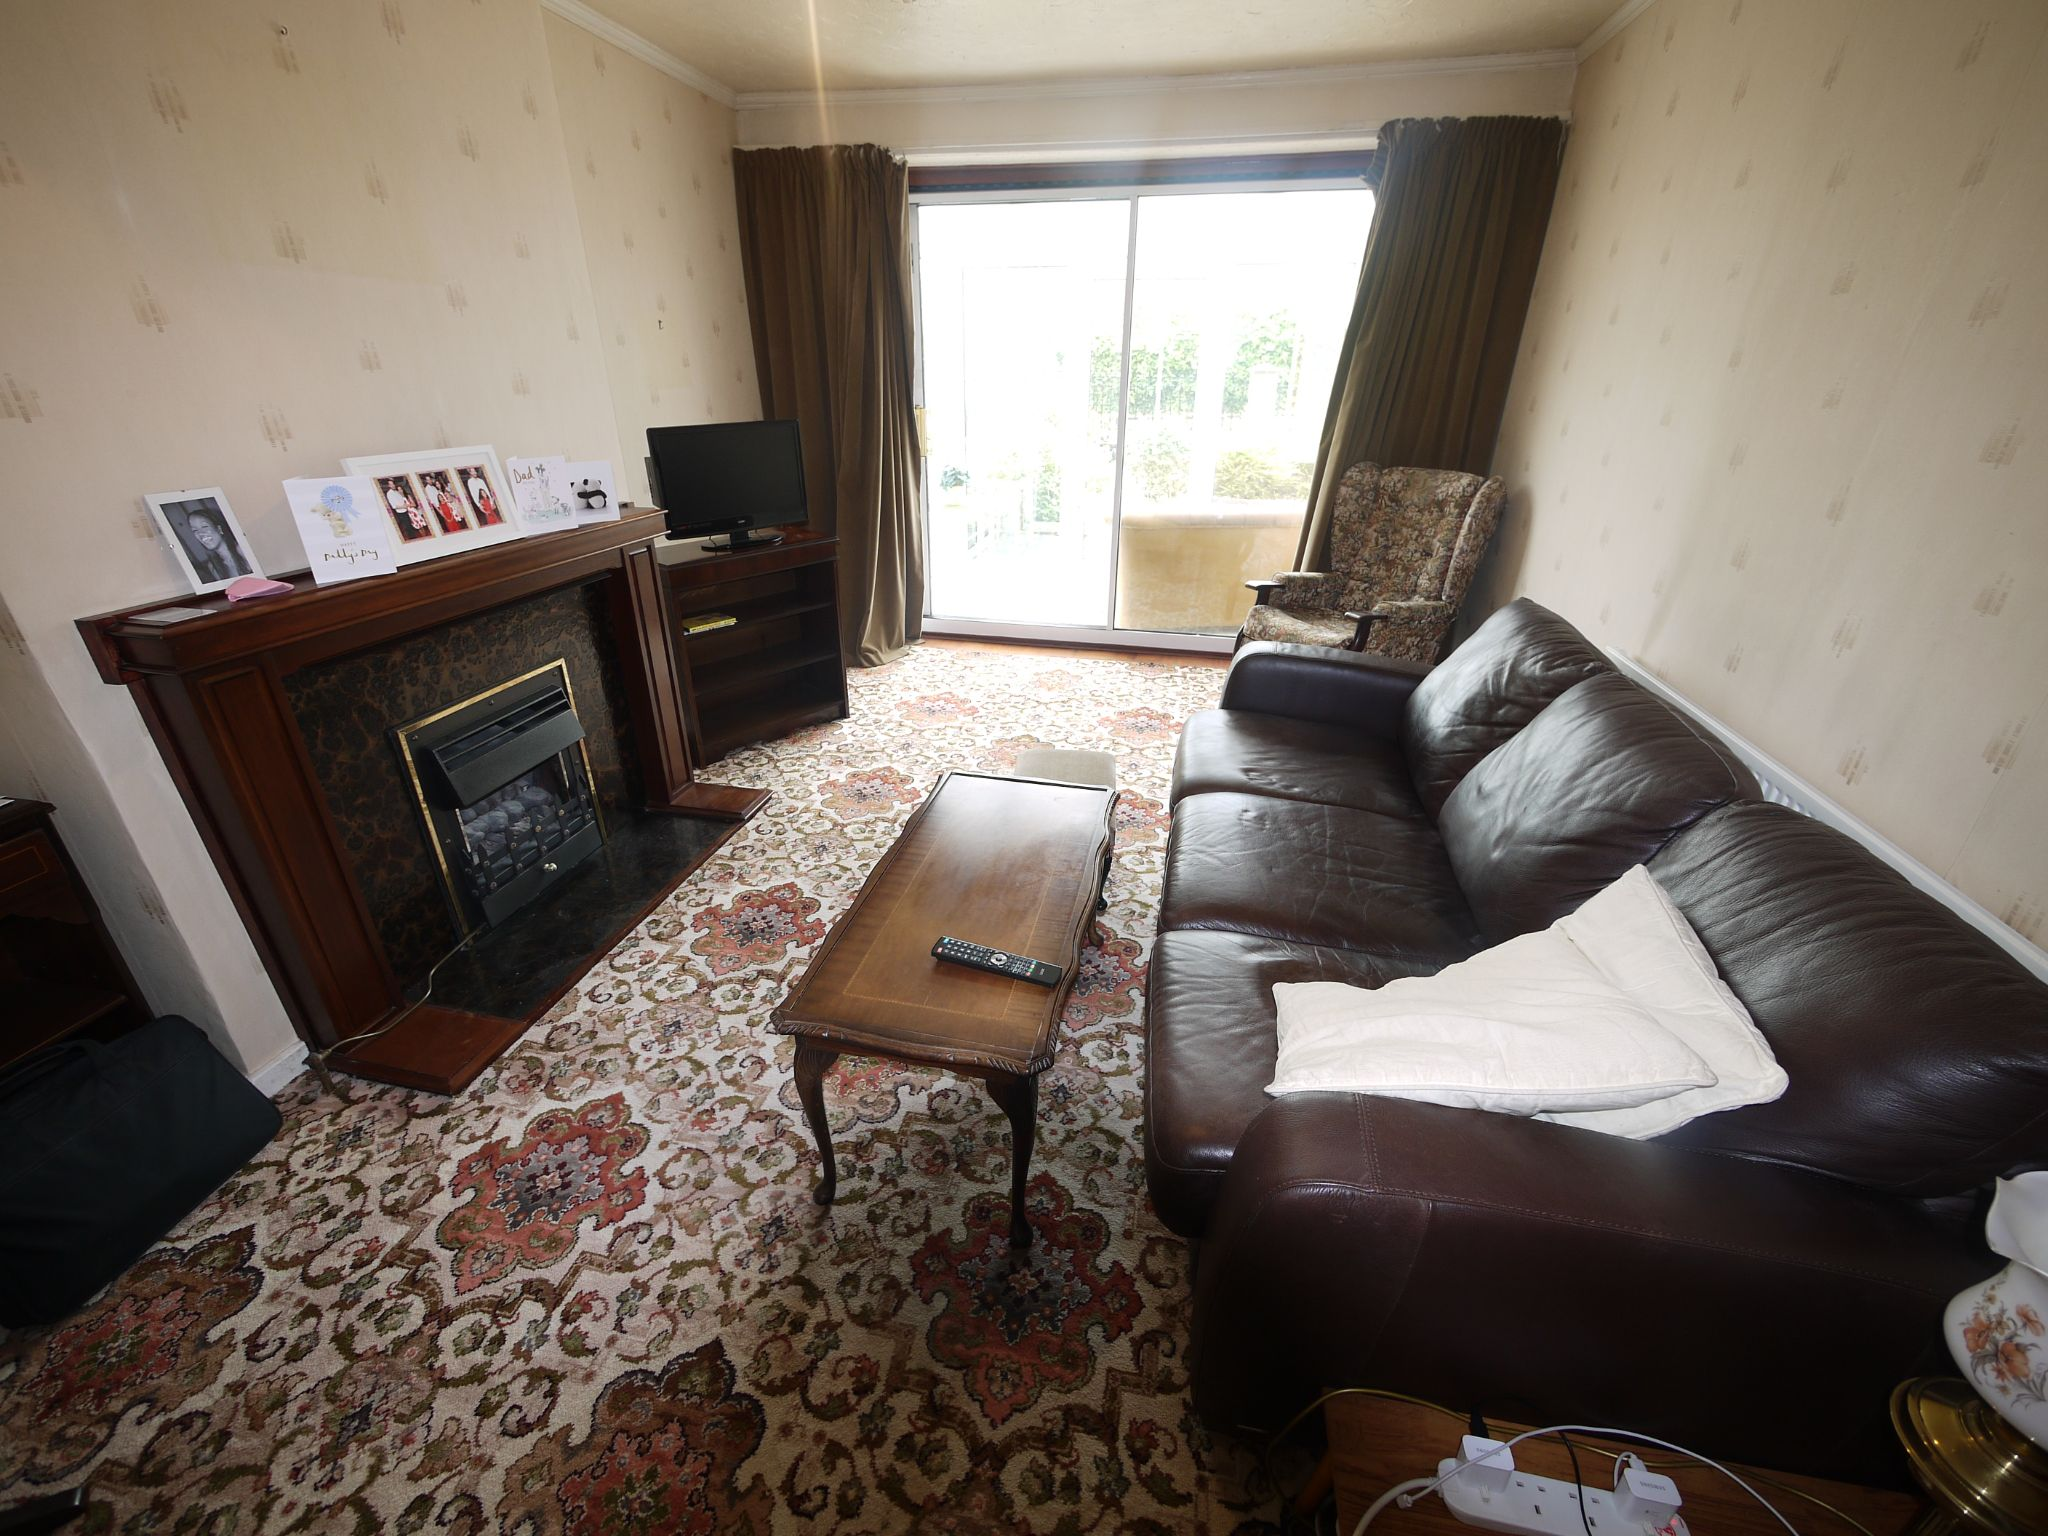 2 bedroom semi-detached bungalow SSTC in Brighouse - Lounge.